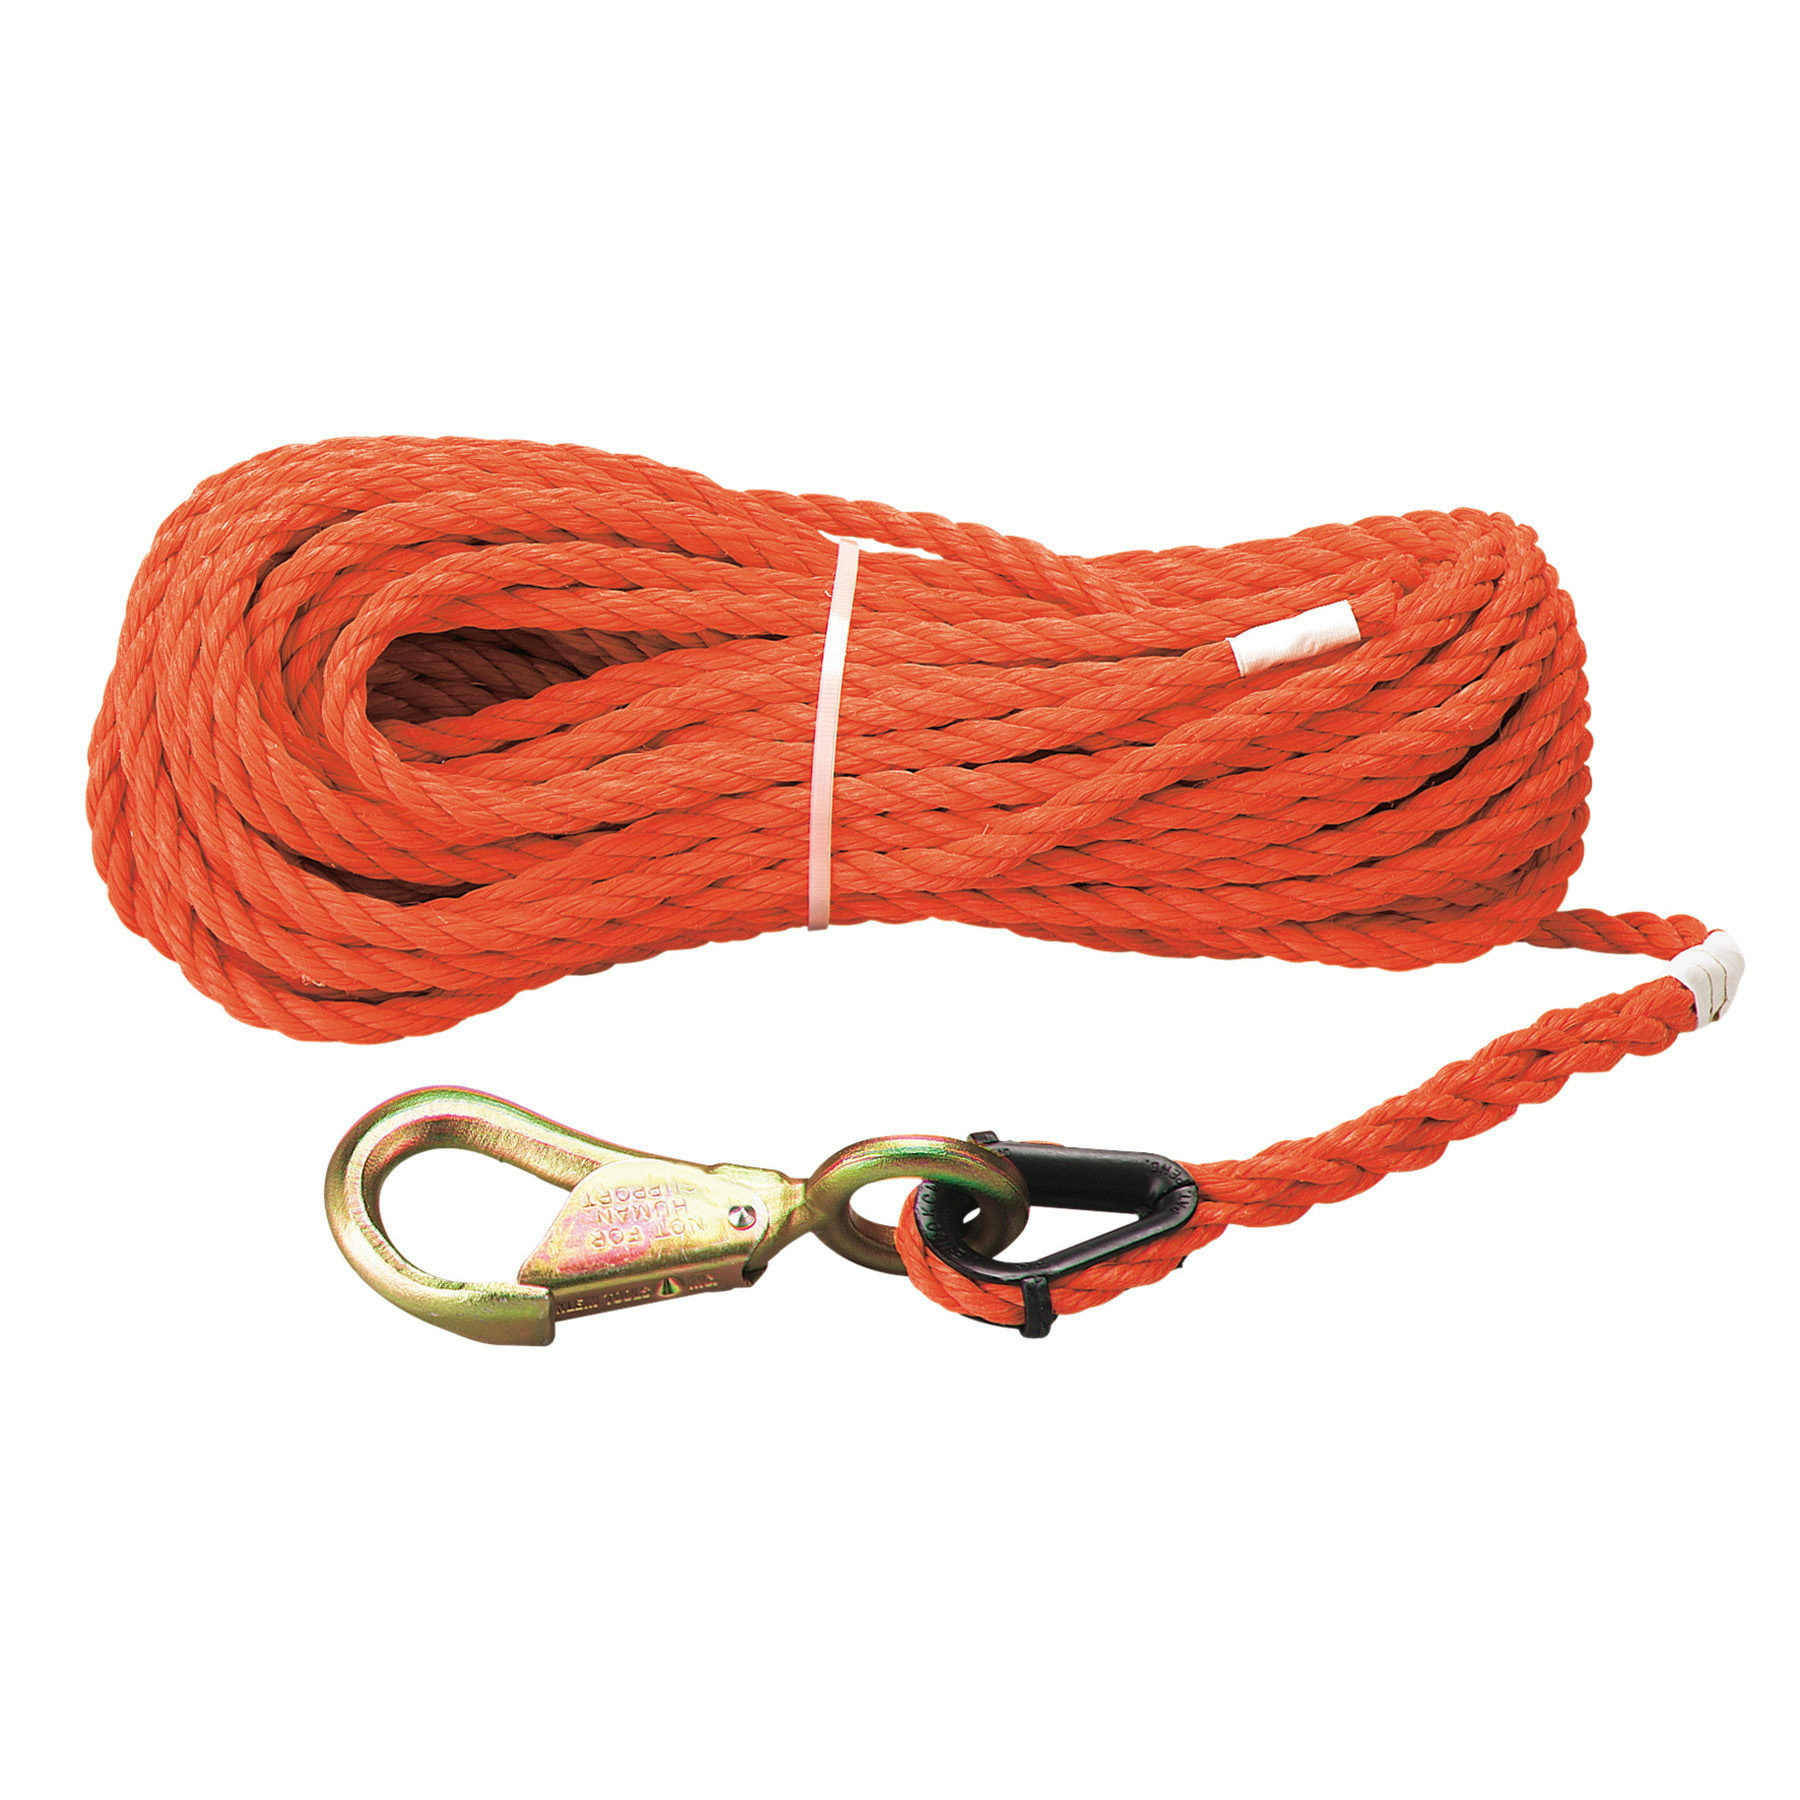 Klein Polypropylene Hand-Line with Snap Hook